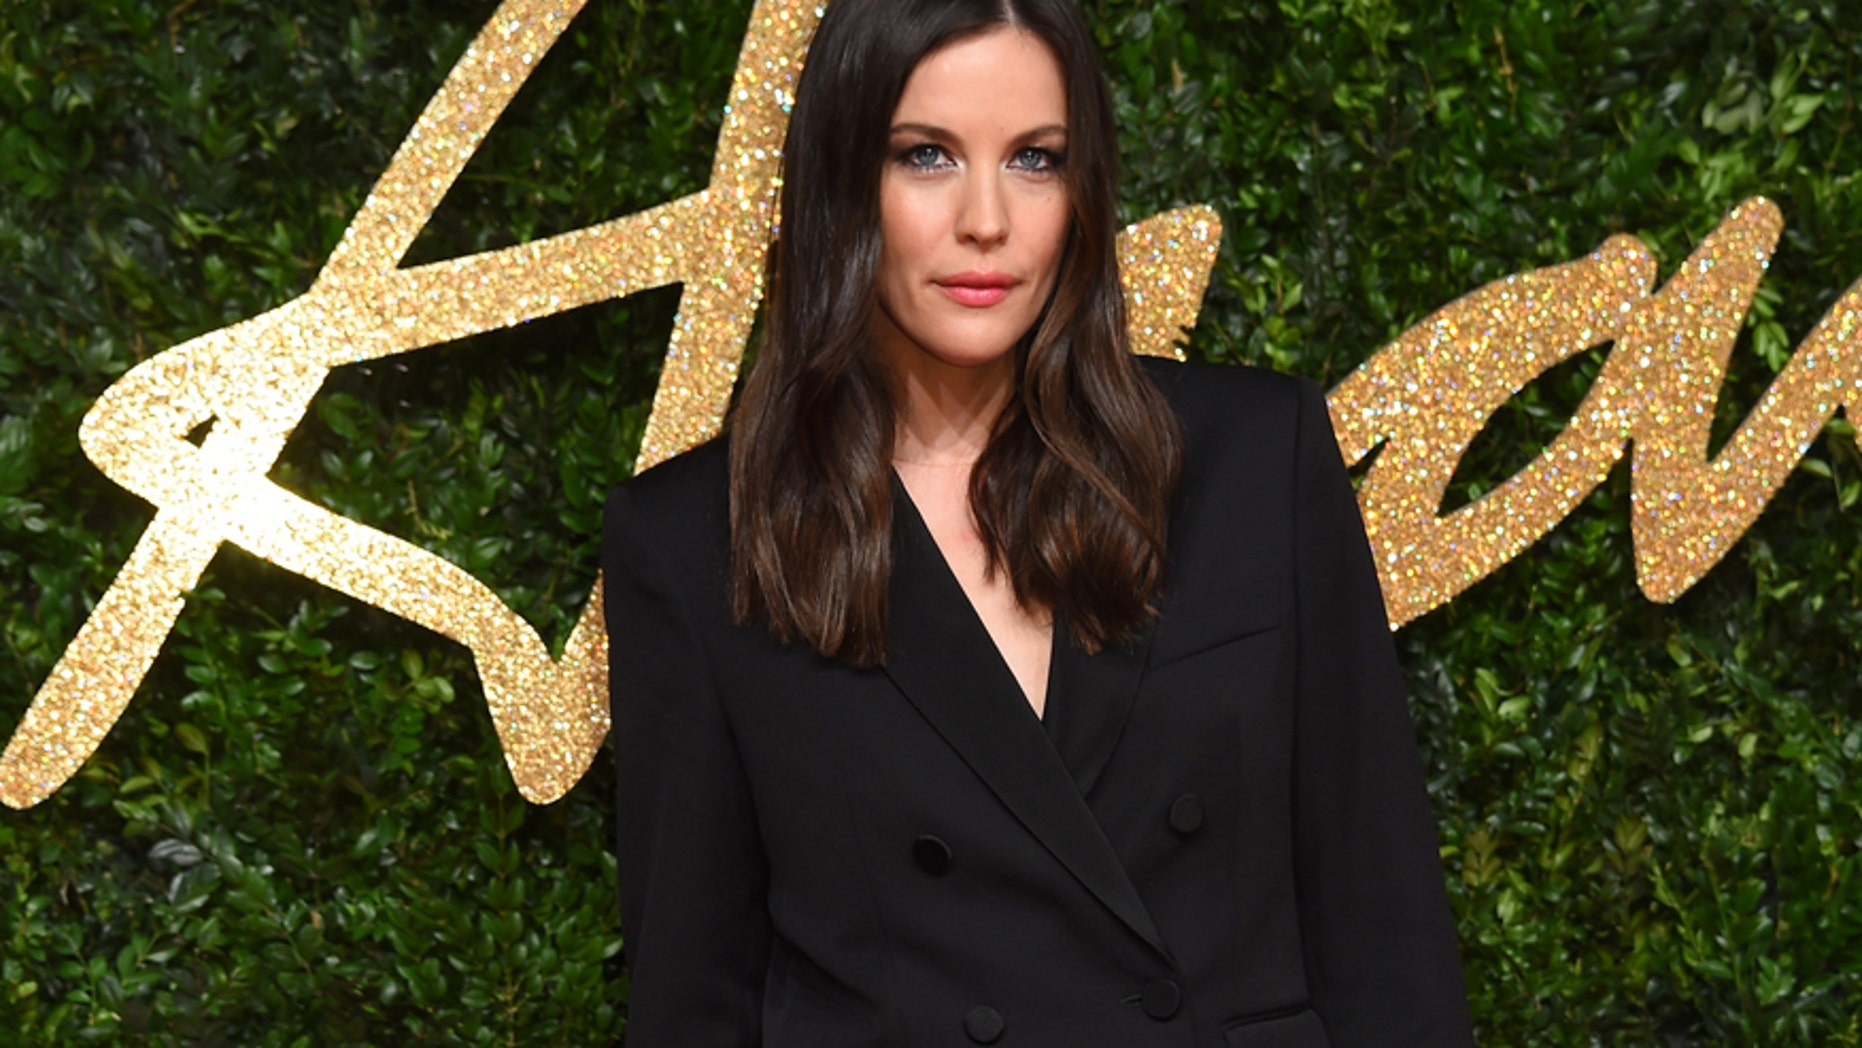 Liv Tyler poses for photographers upon arrival at the British Fashion Awards 2015 in London, Monday, Nov. 23, 2015.